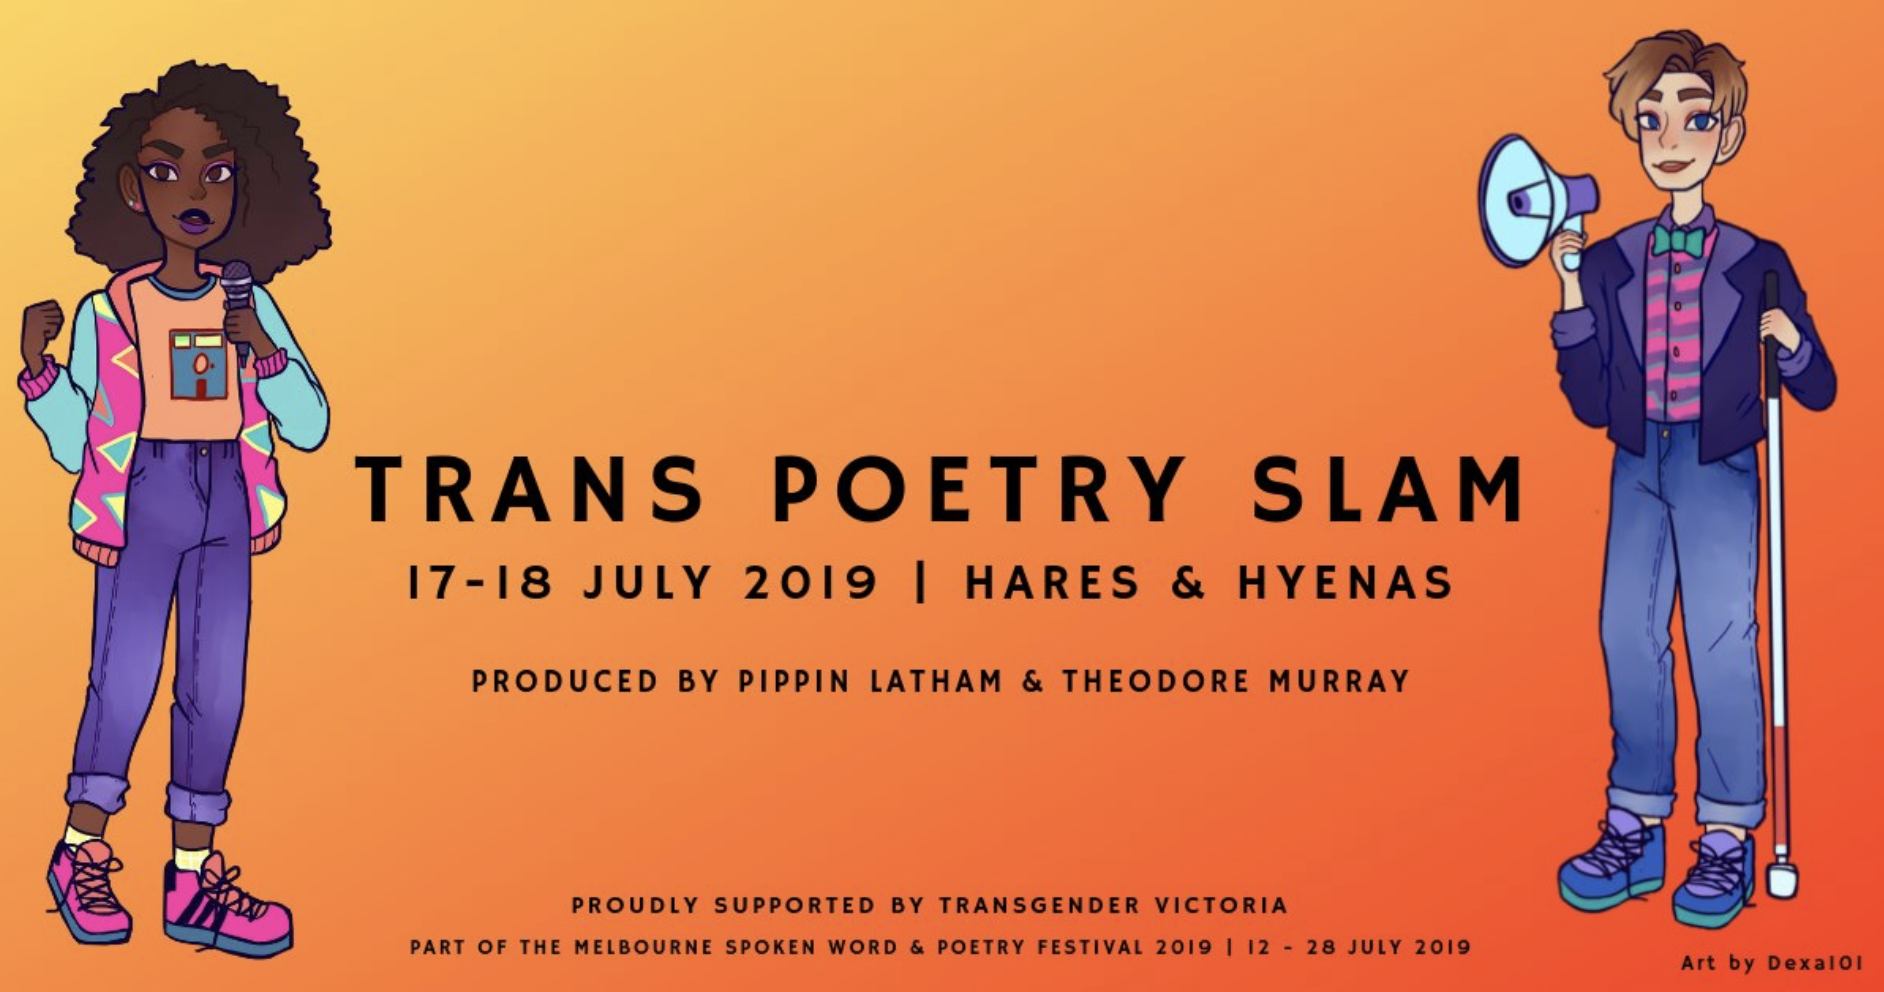 Trans Poetry Slam at MSWPF 2019 (Heats) - Victorian Pride Centre